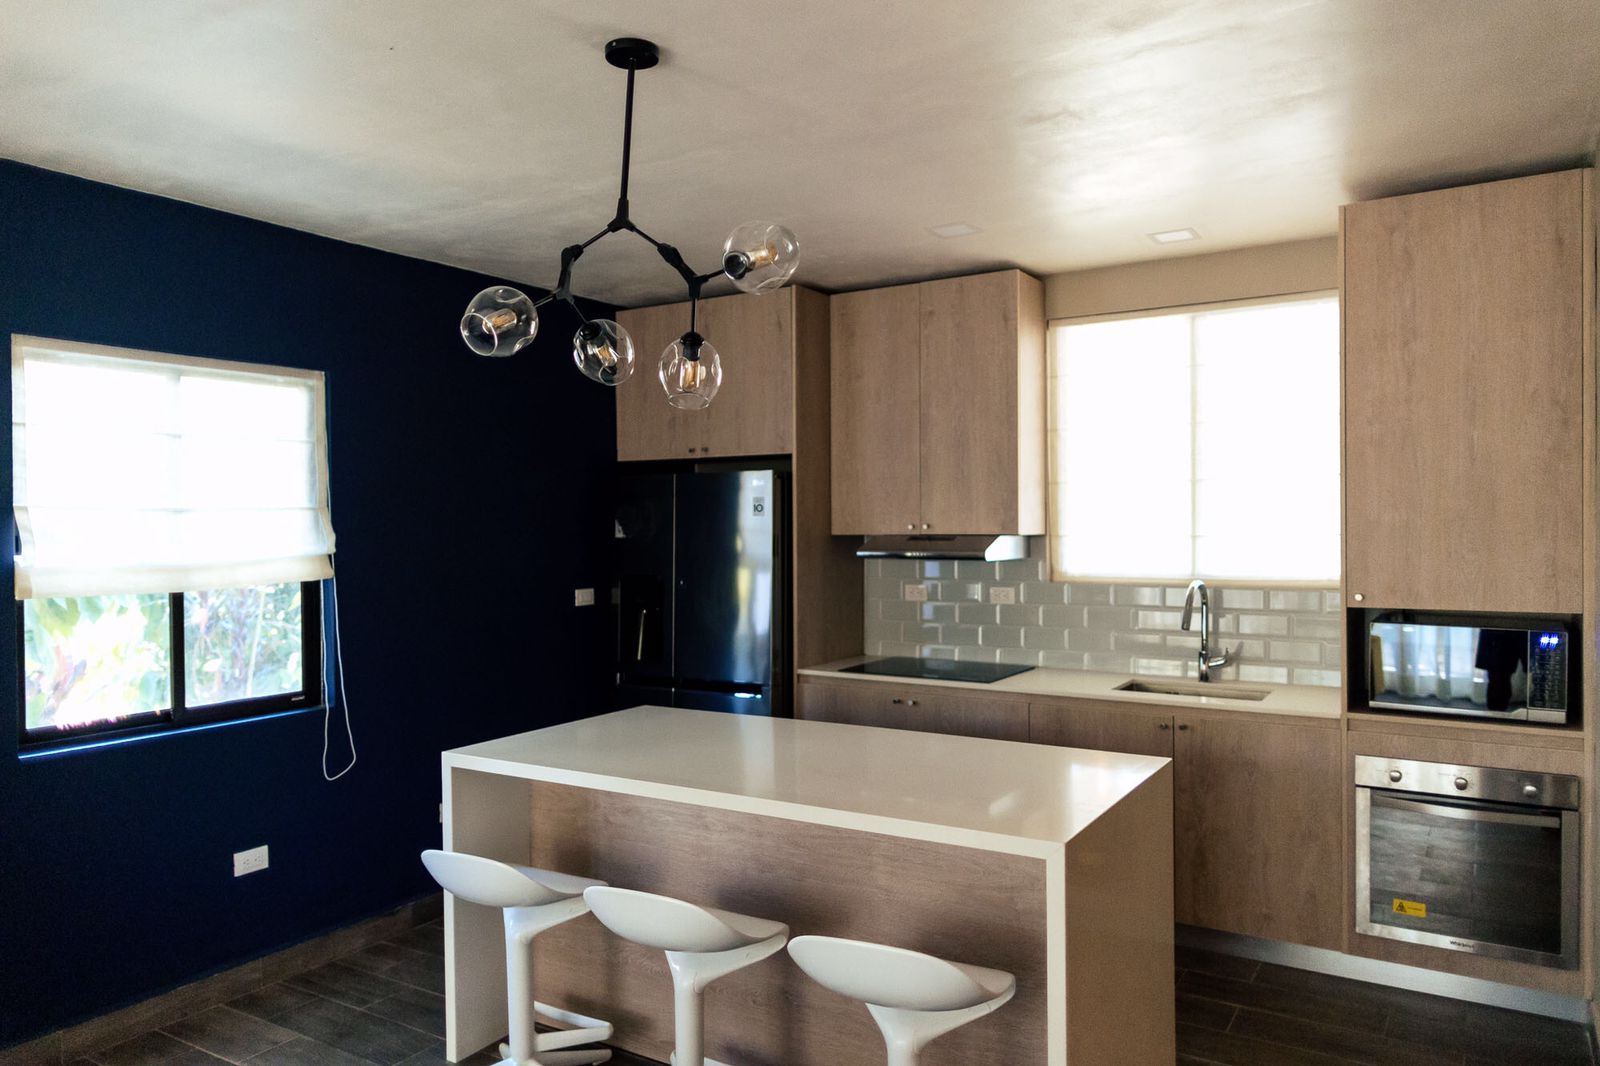 view of the kitchen and blue accent wall